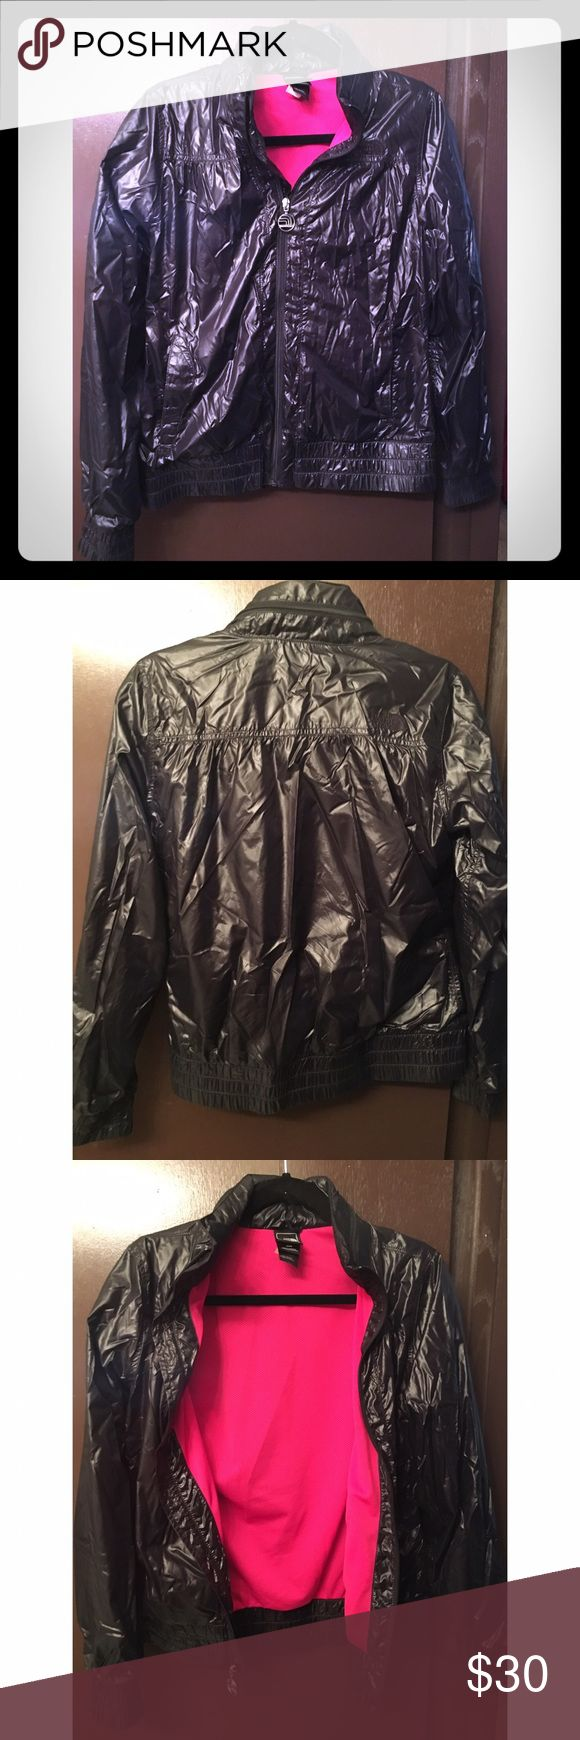 The North Face Windbreaker LIKE NEW The North Face black and pink windbreaker. Has a zipped up hood (see photo of back). Excellent condition. Size Medium North Face Jackets & Coats